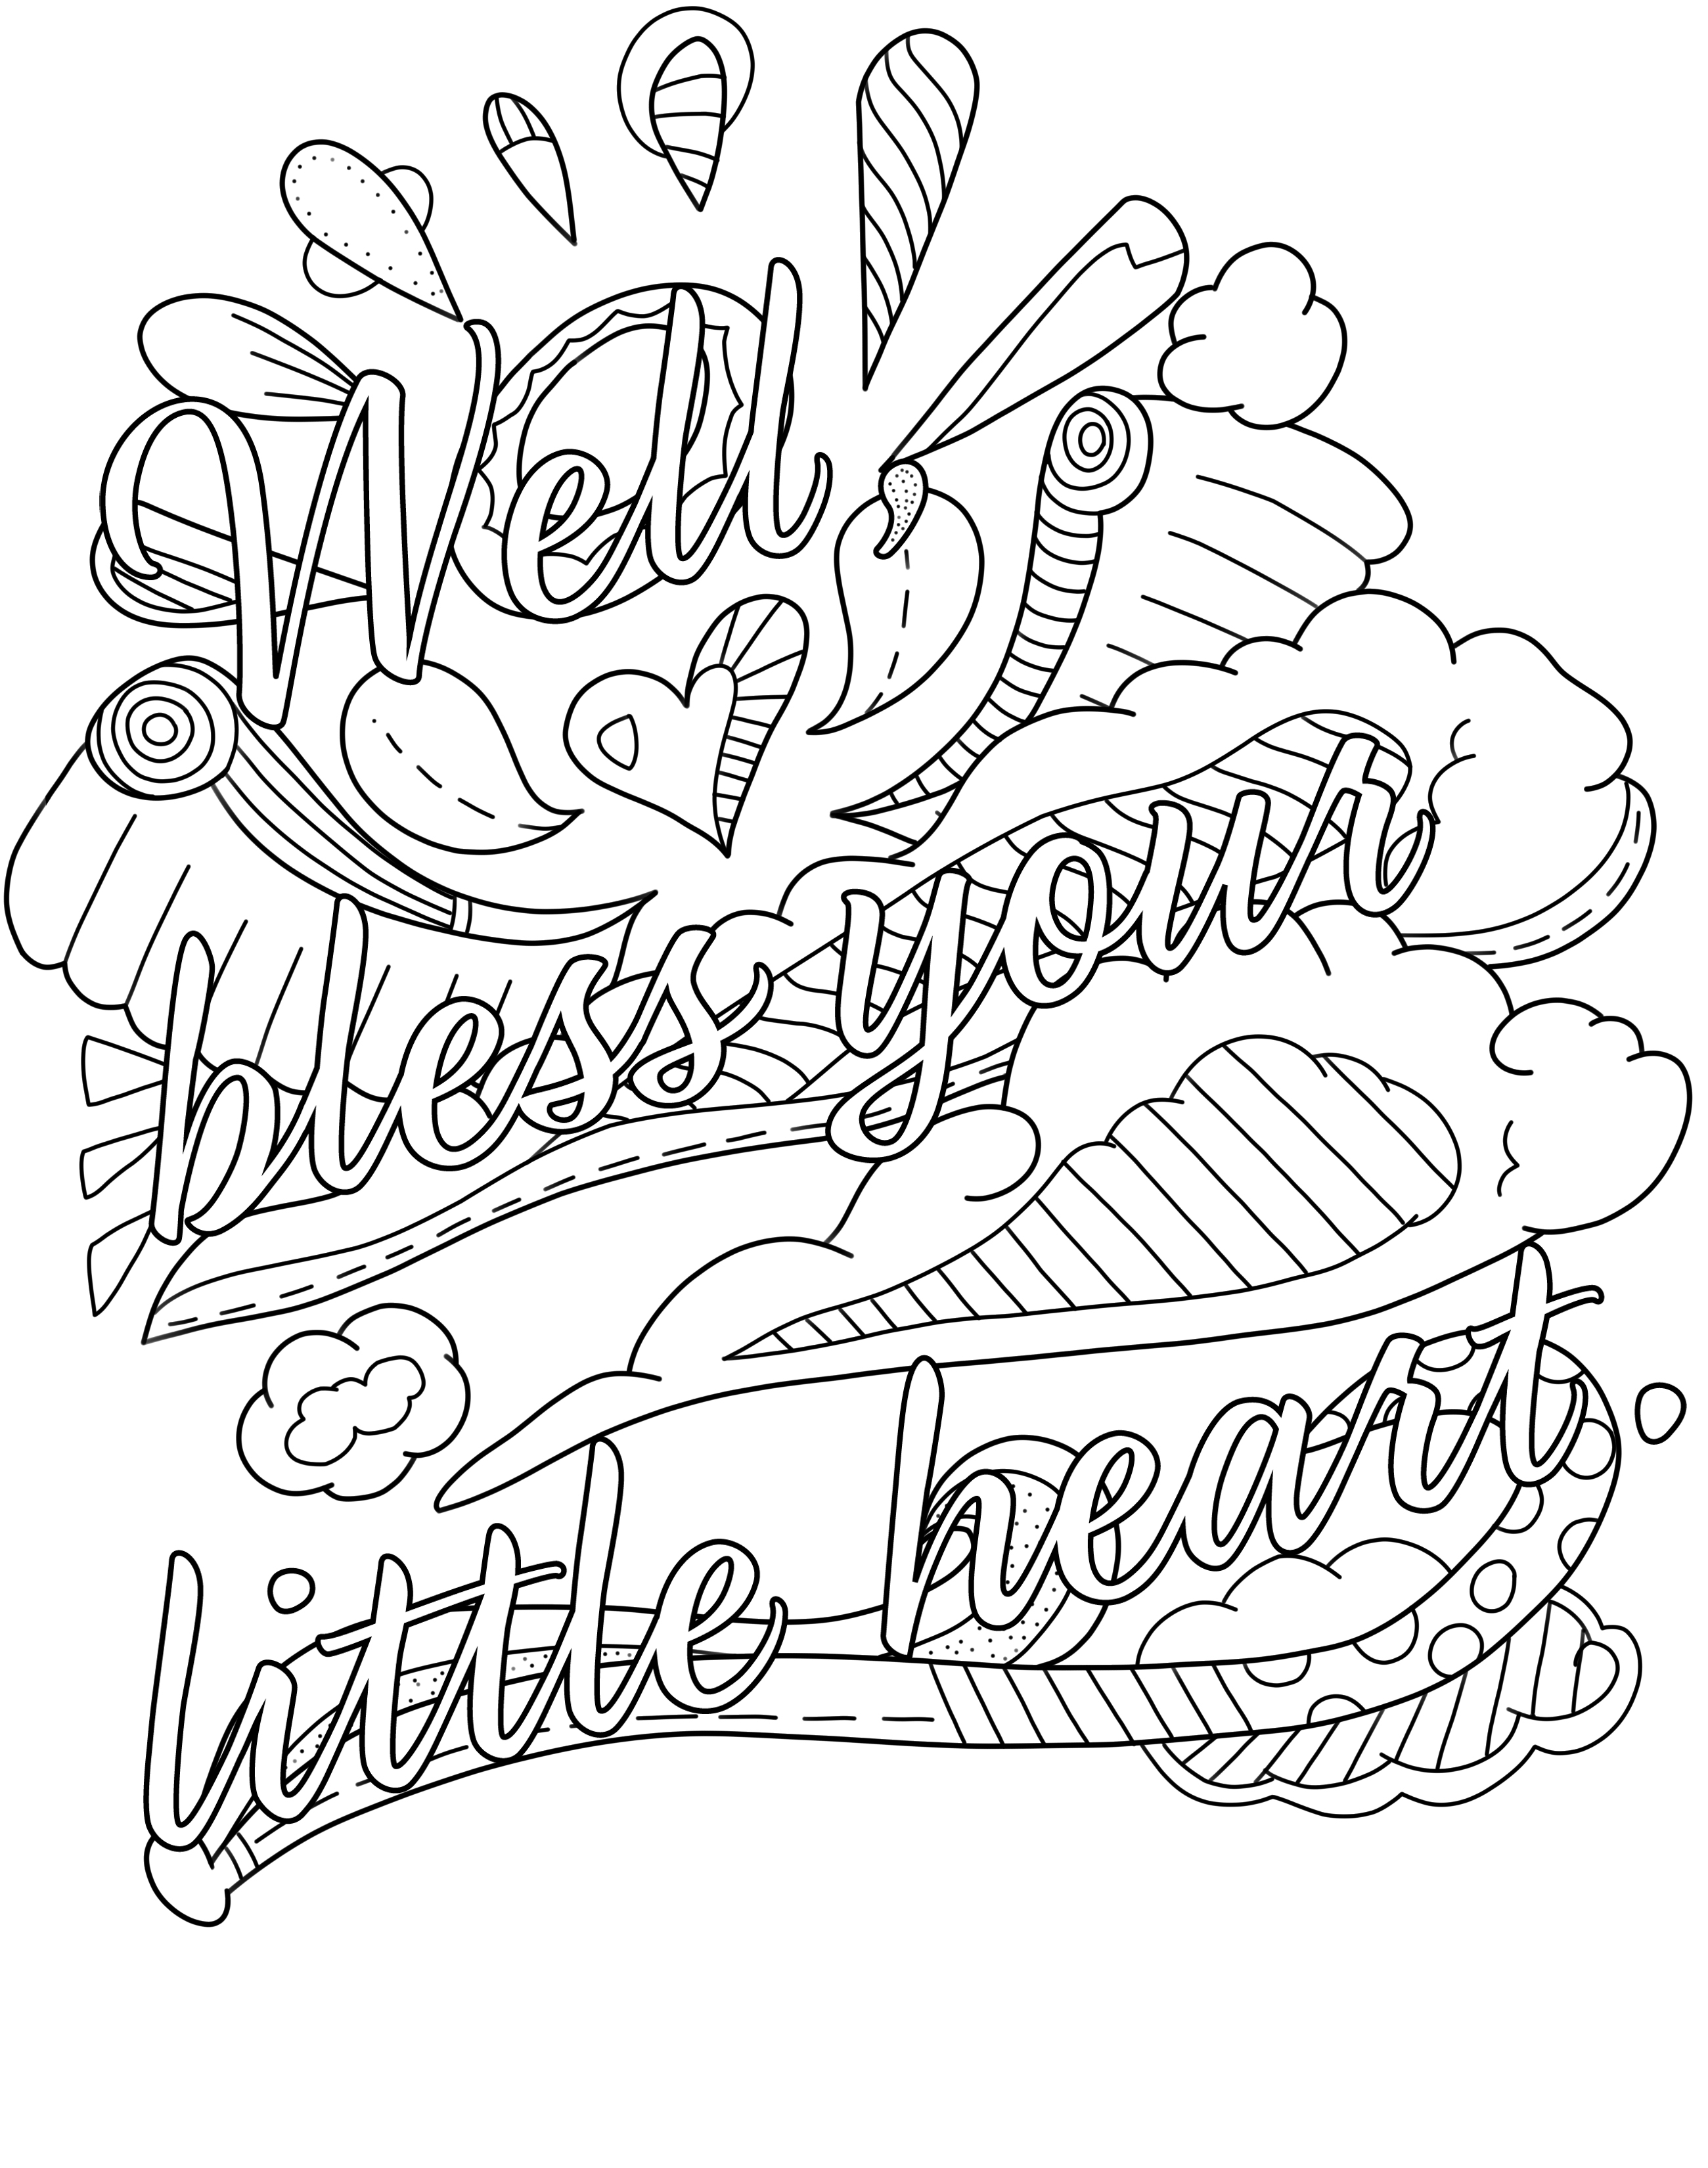 Swear Words Coloring Pages - Lezincnyc - Free Printable Coloring Pages For Adults Only Swear Words